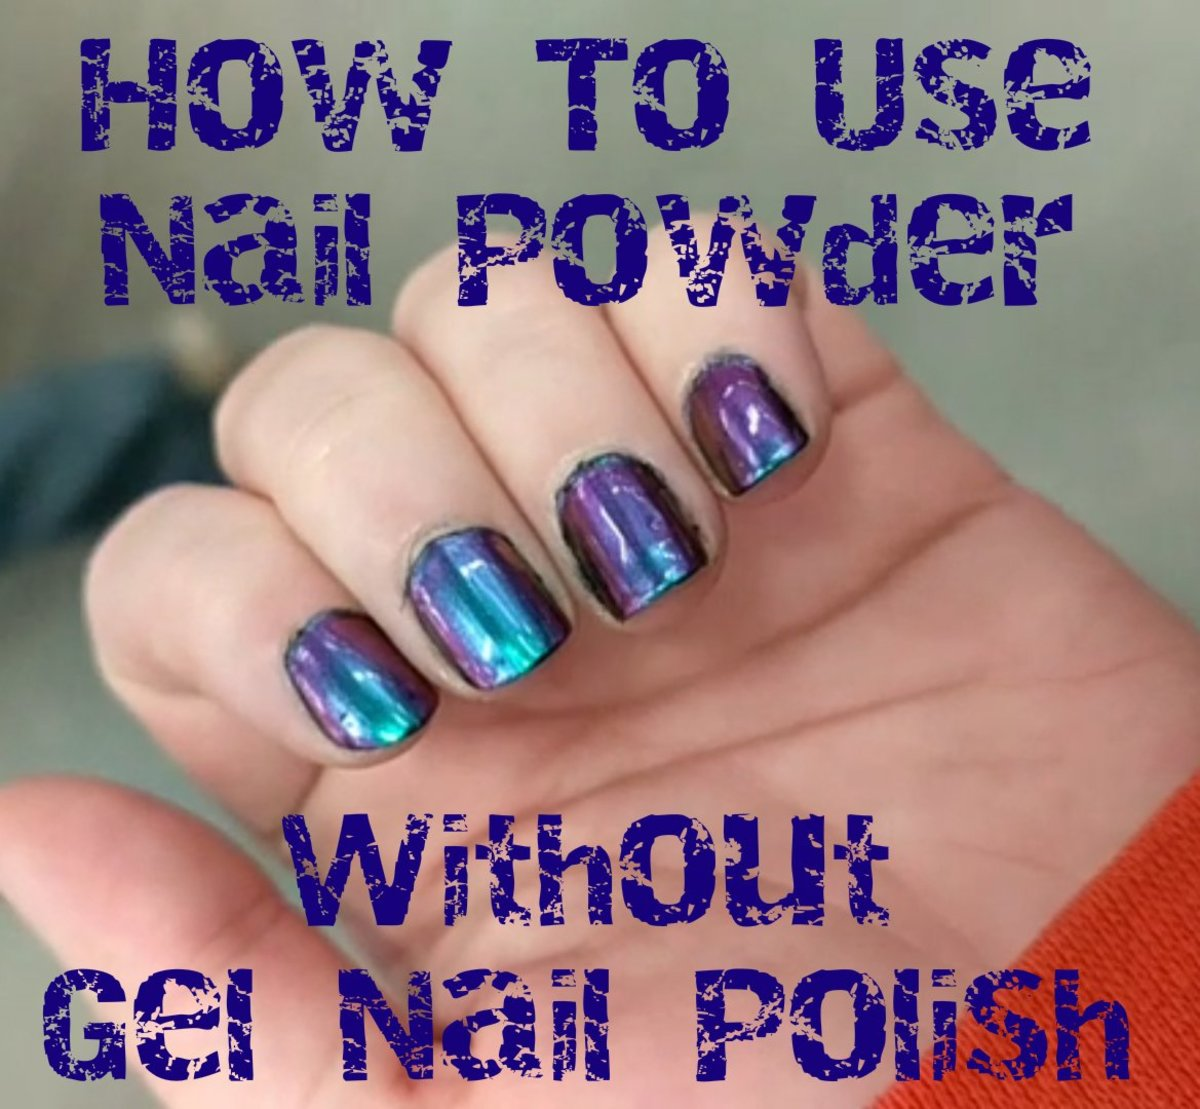 DIY multichrome powder manicure without gel nail polish.